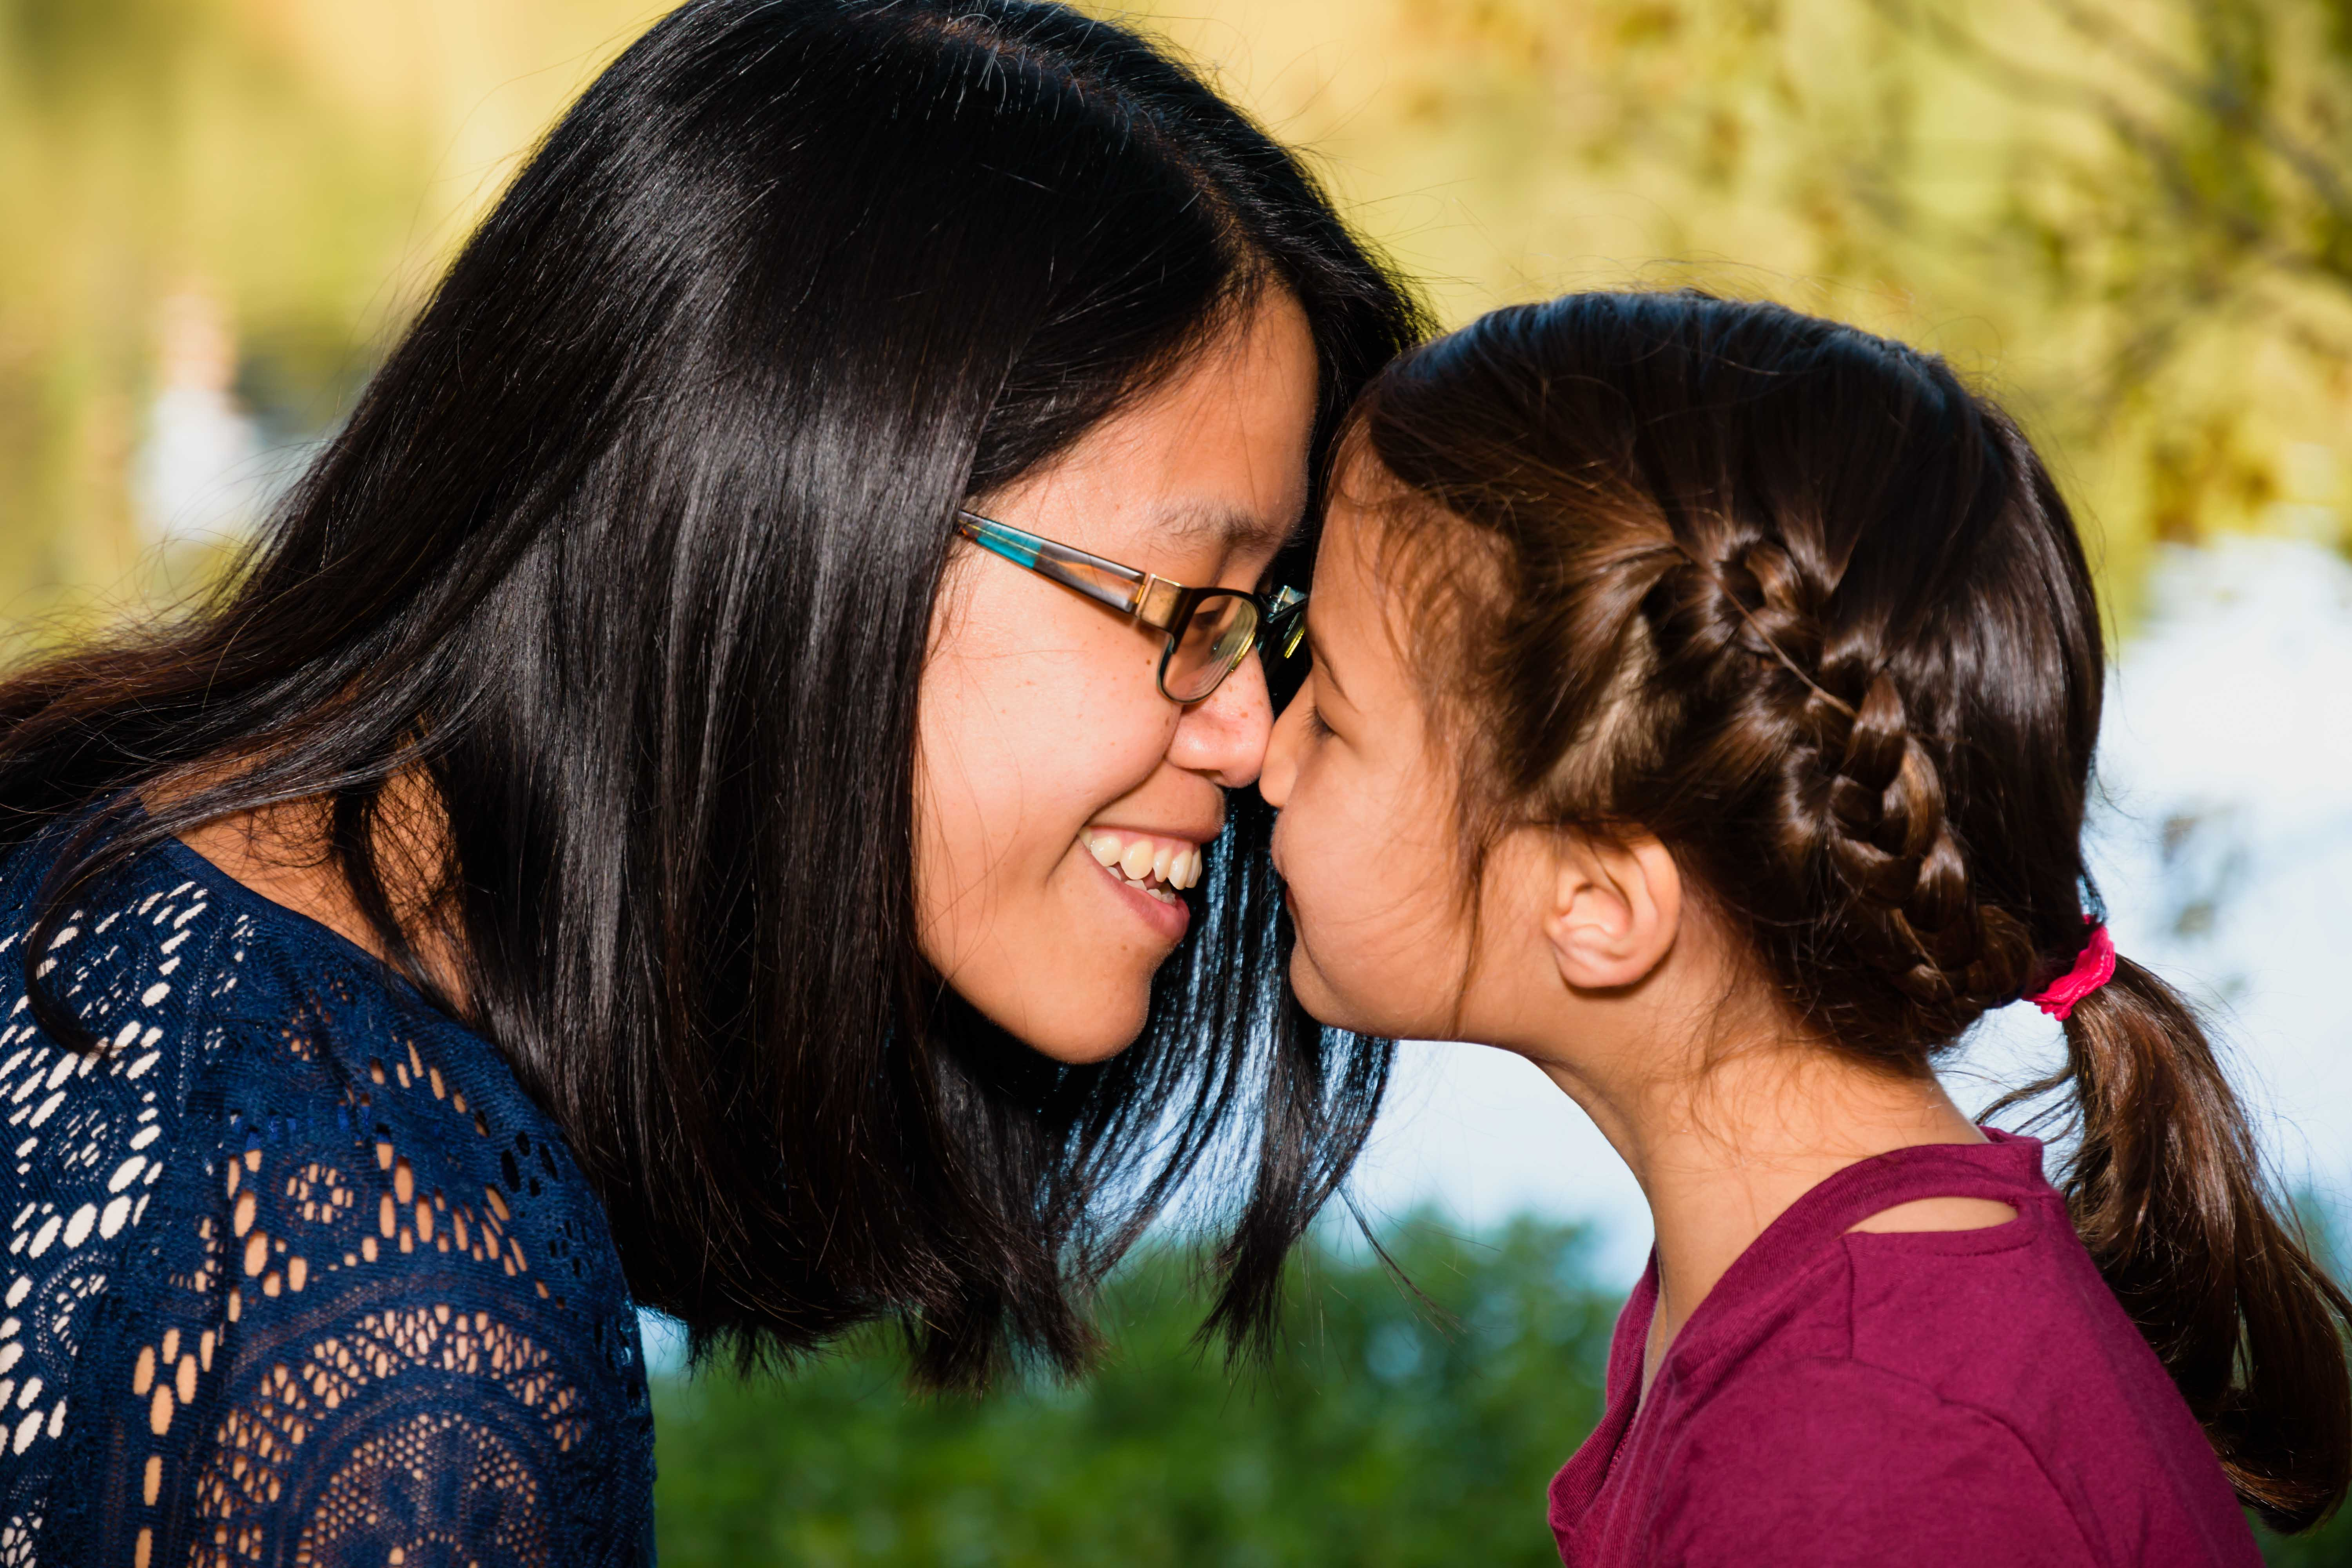 bay area family photography vasona park mother daughter children candid